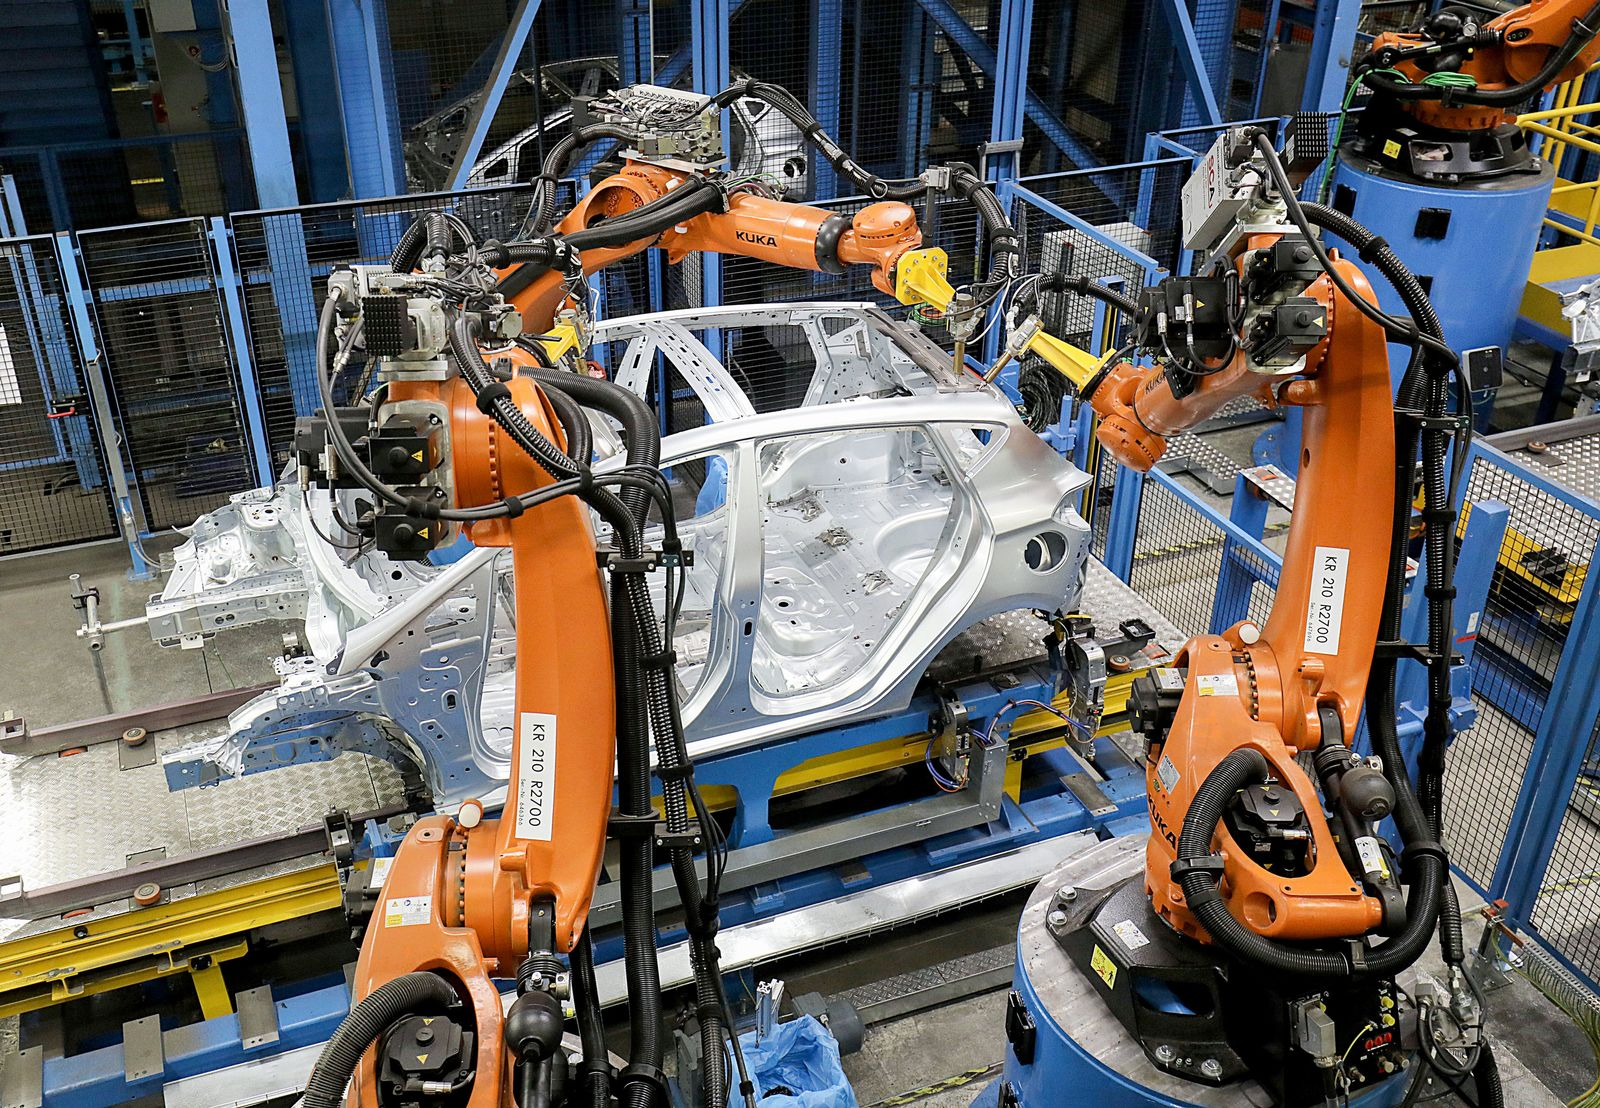 Kuka - Produktion bei Ford